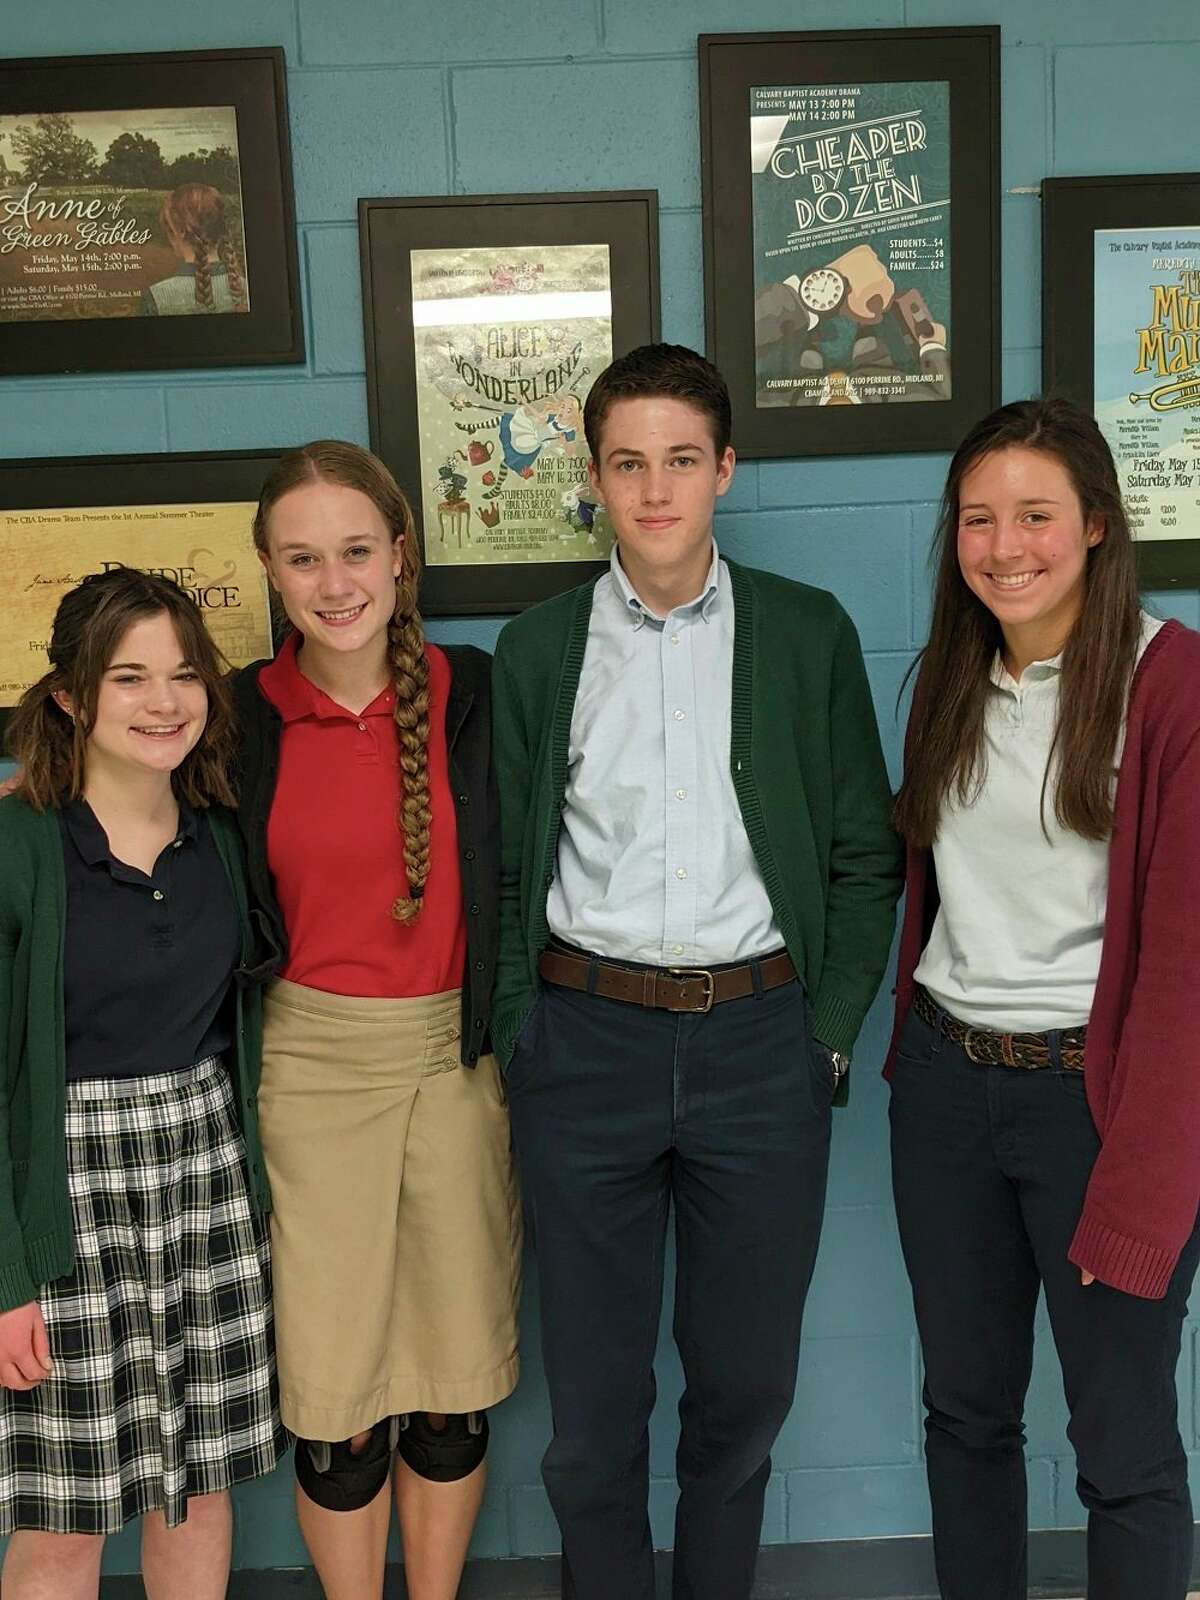 Pictured are the top students at Calvary Baptist Academy. From left is Madeline Chrylser, Elaiyna Schwartzkopf, Drew Dale, and Caroline Holdeman. (Photo Provided)